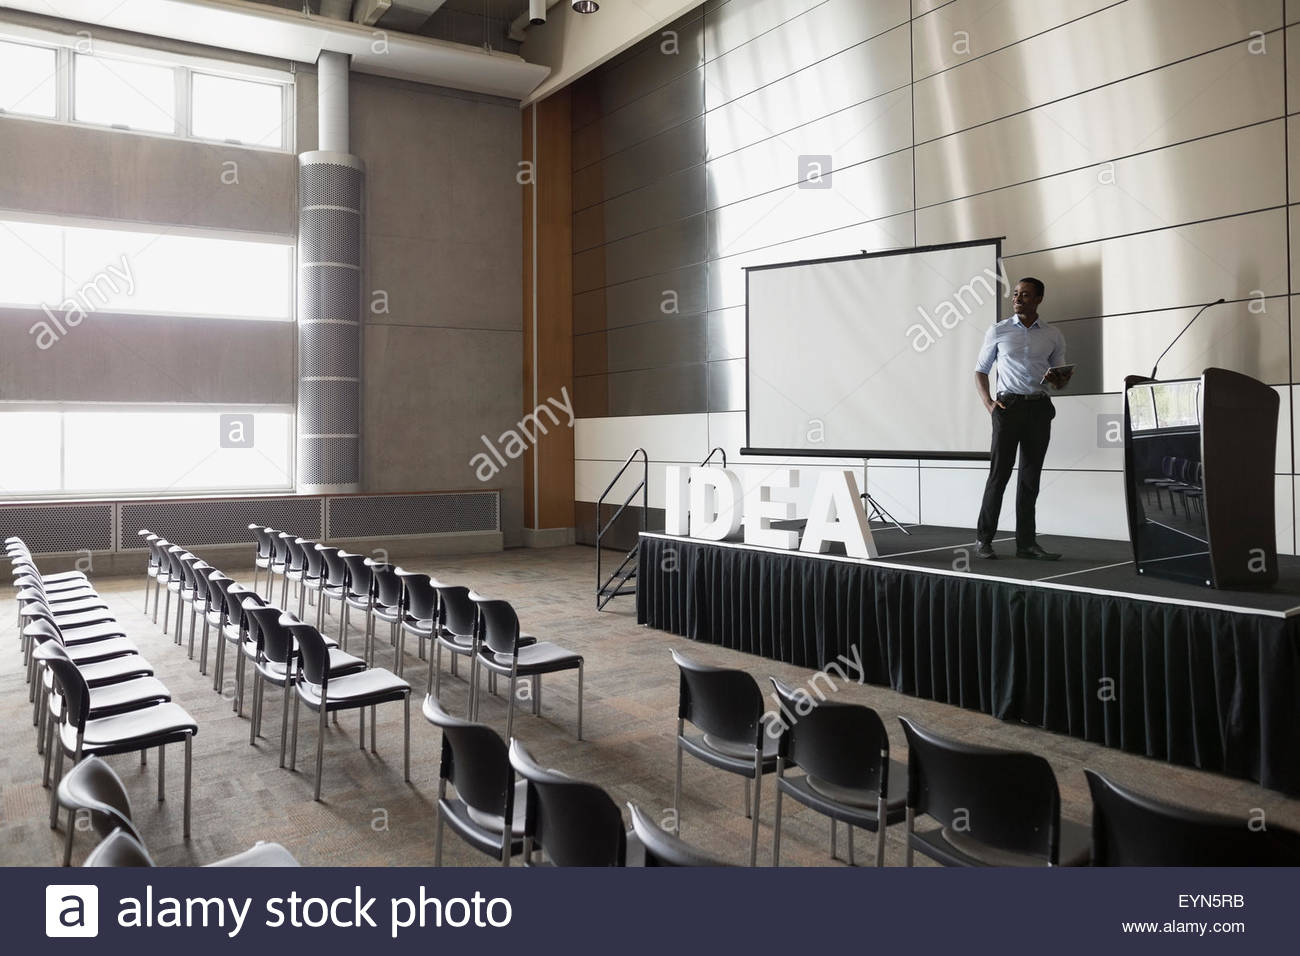 Man standing on stage in empty auditorium - Stock Image